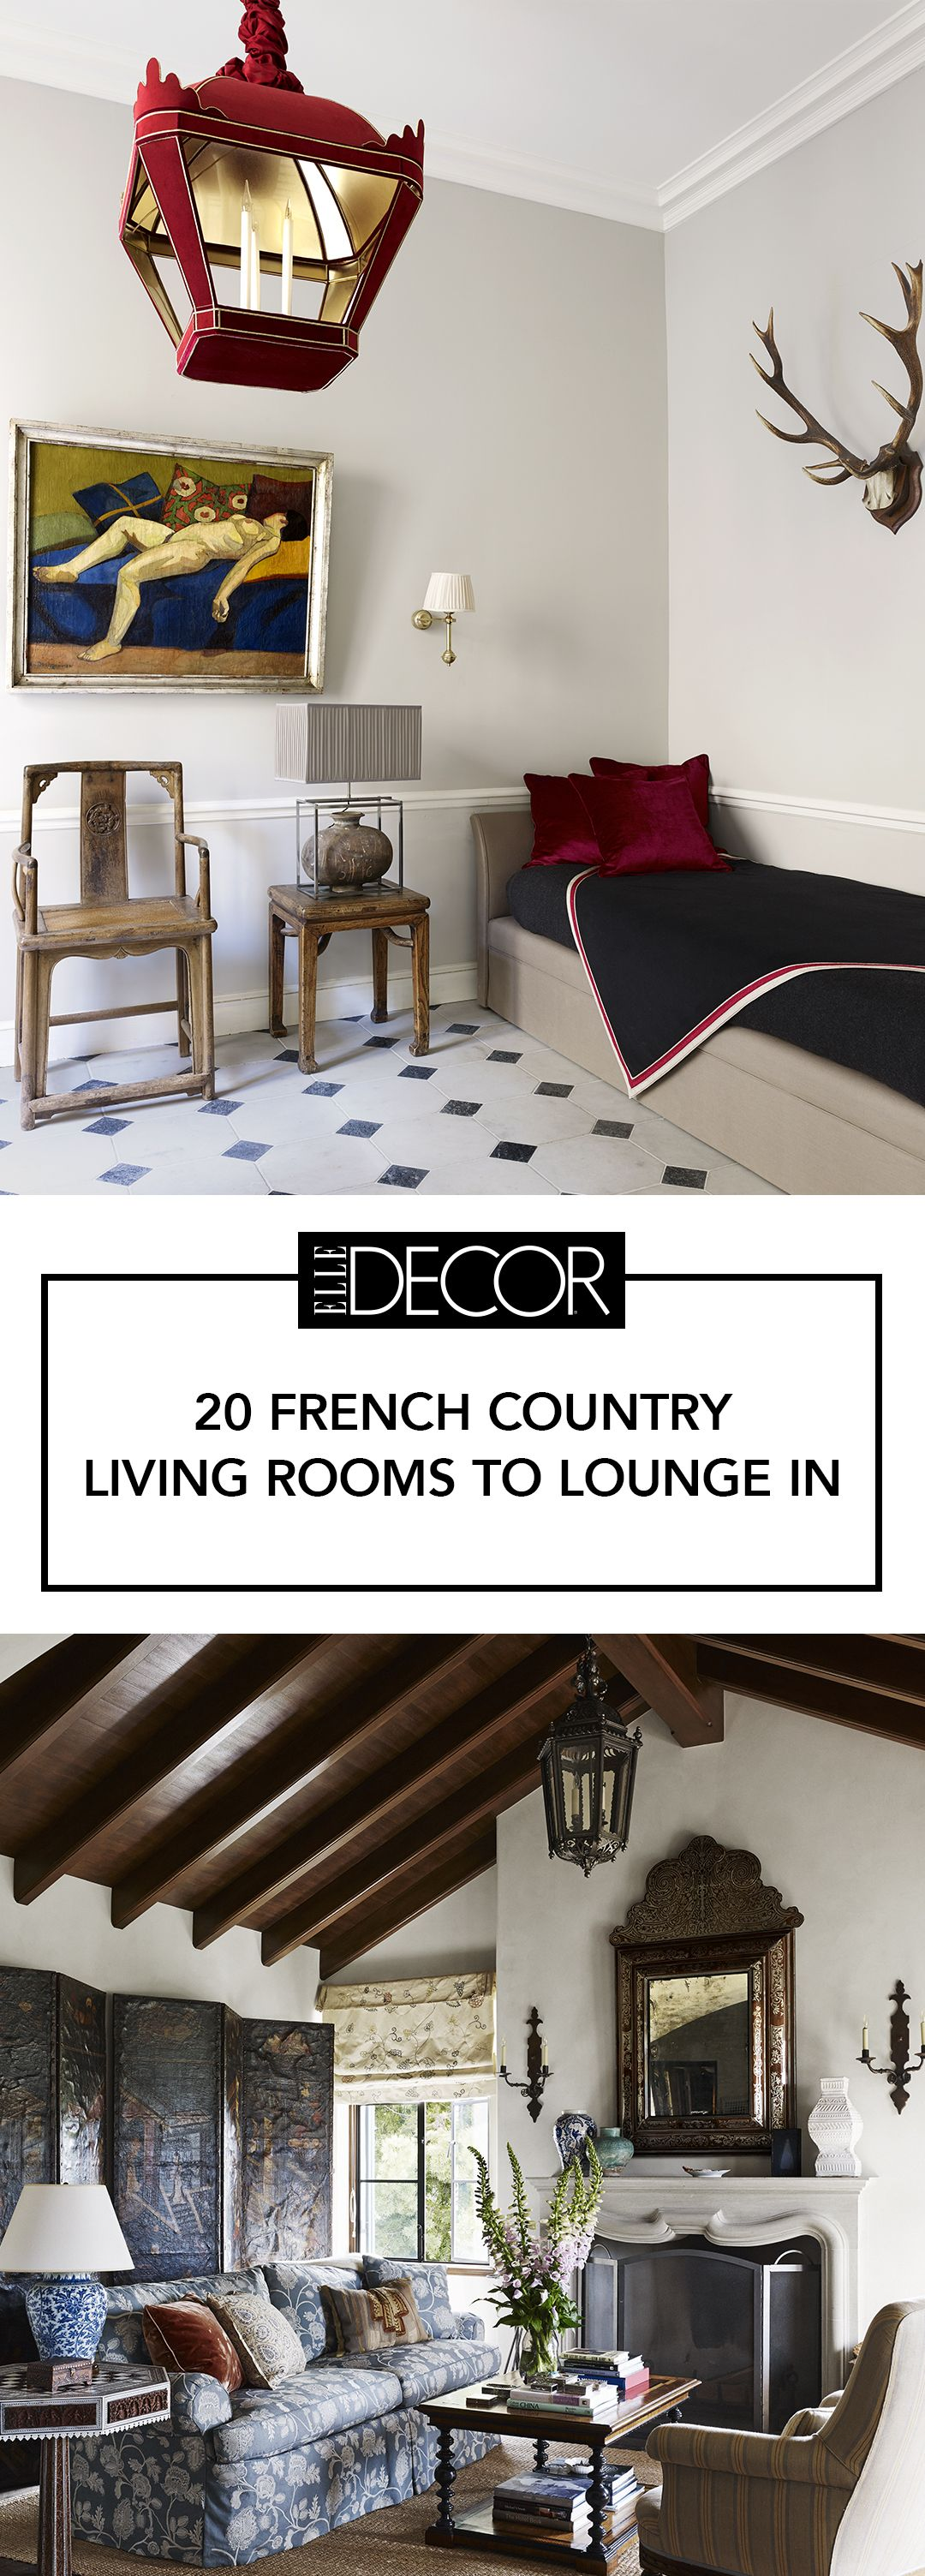 20 French Country Living Room Ideas